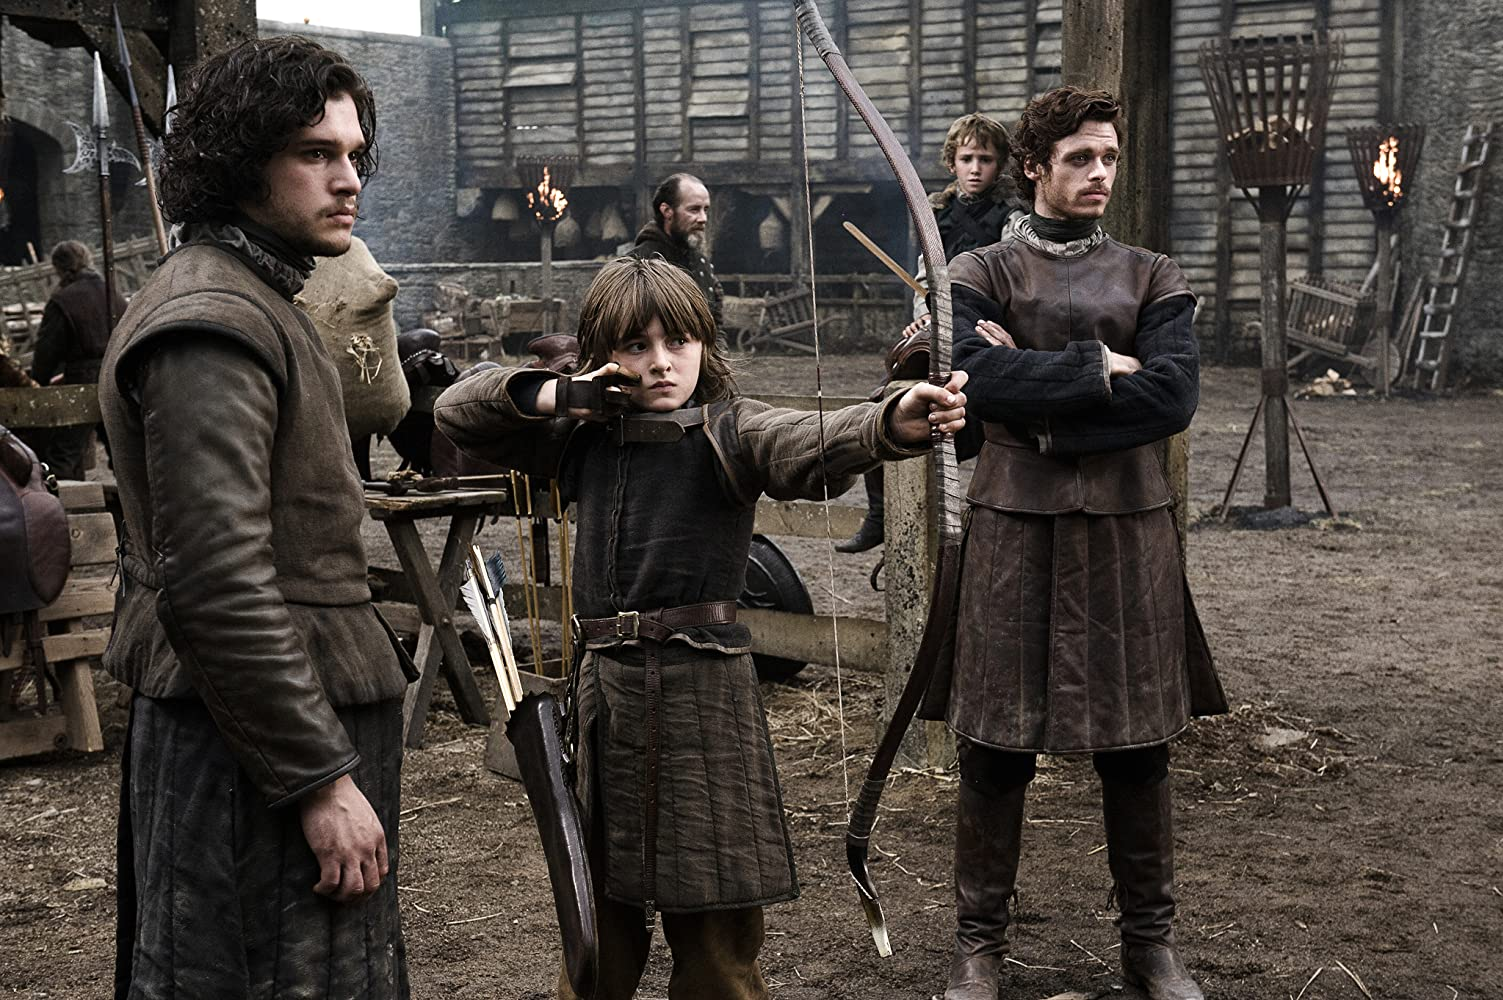 Richard Madden, Kit Harington, Art Parkinson, and Isaac Hempstead Wright in Game of Thrones (2011)